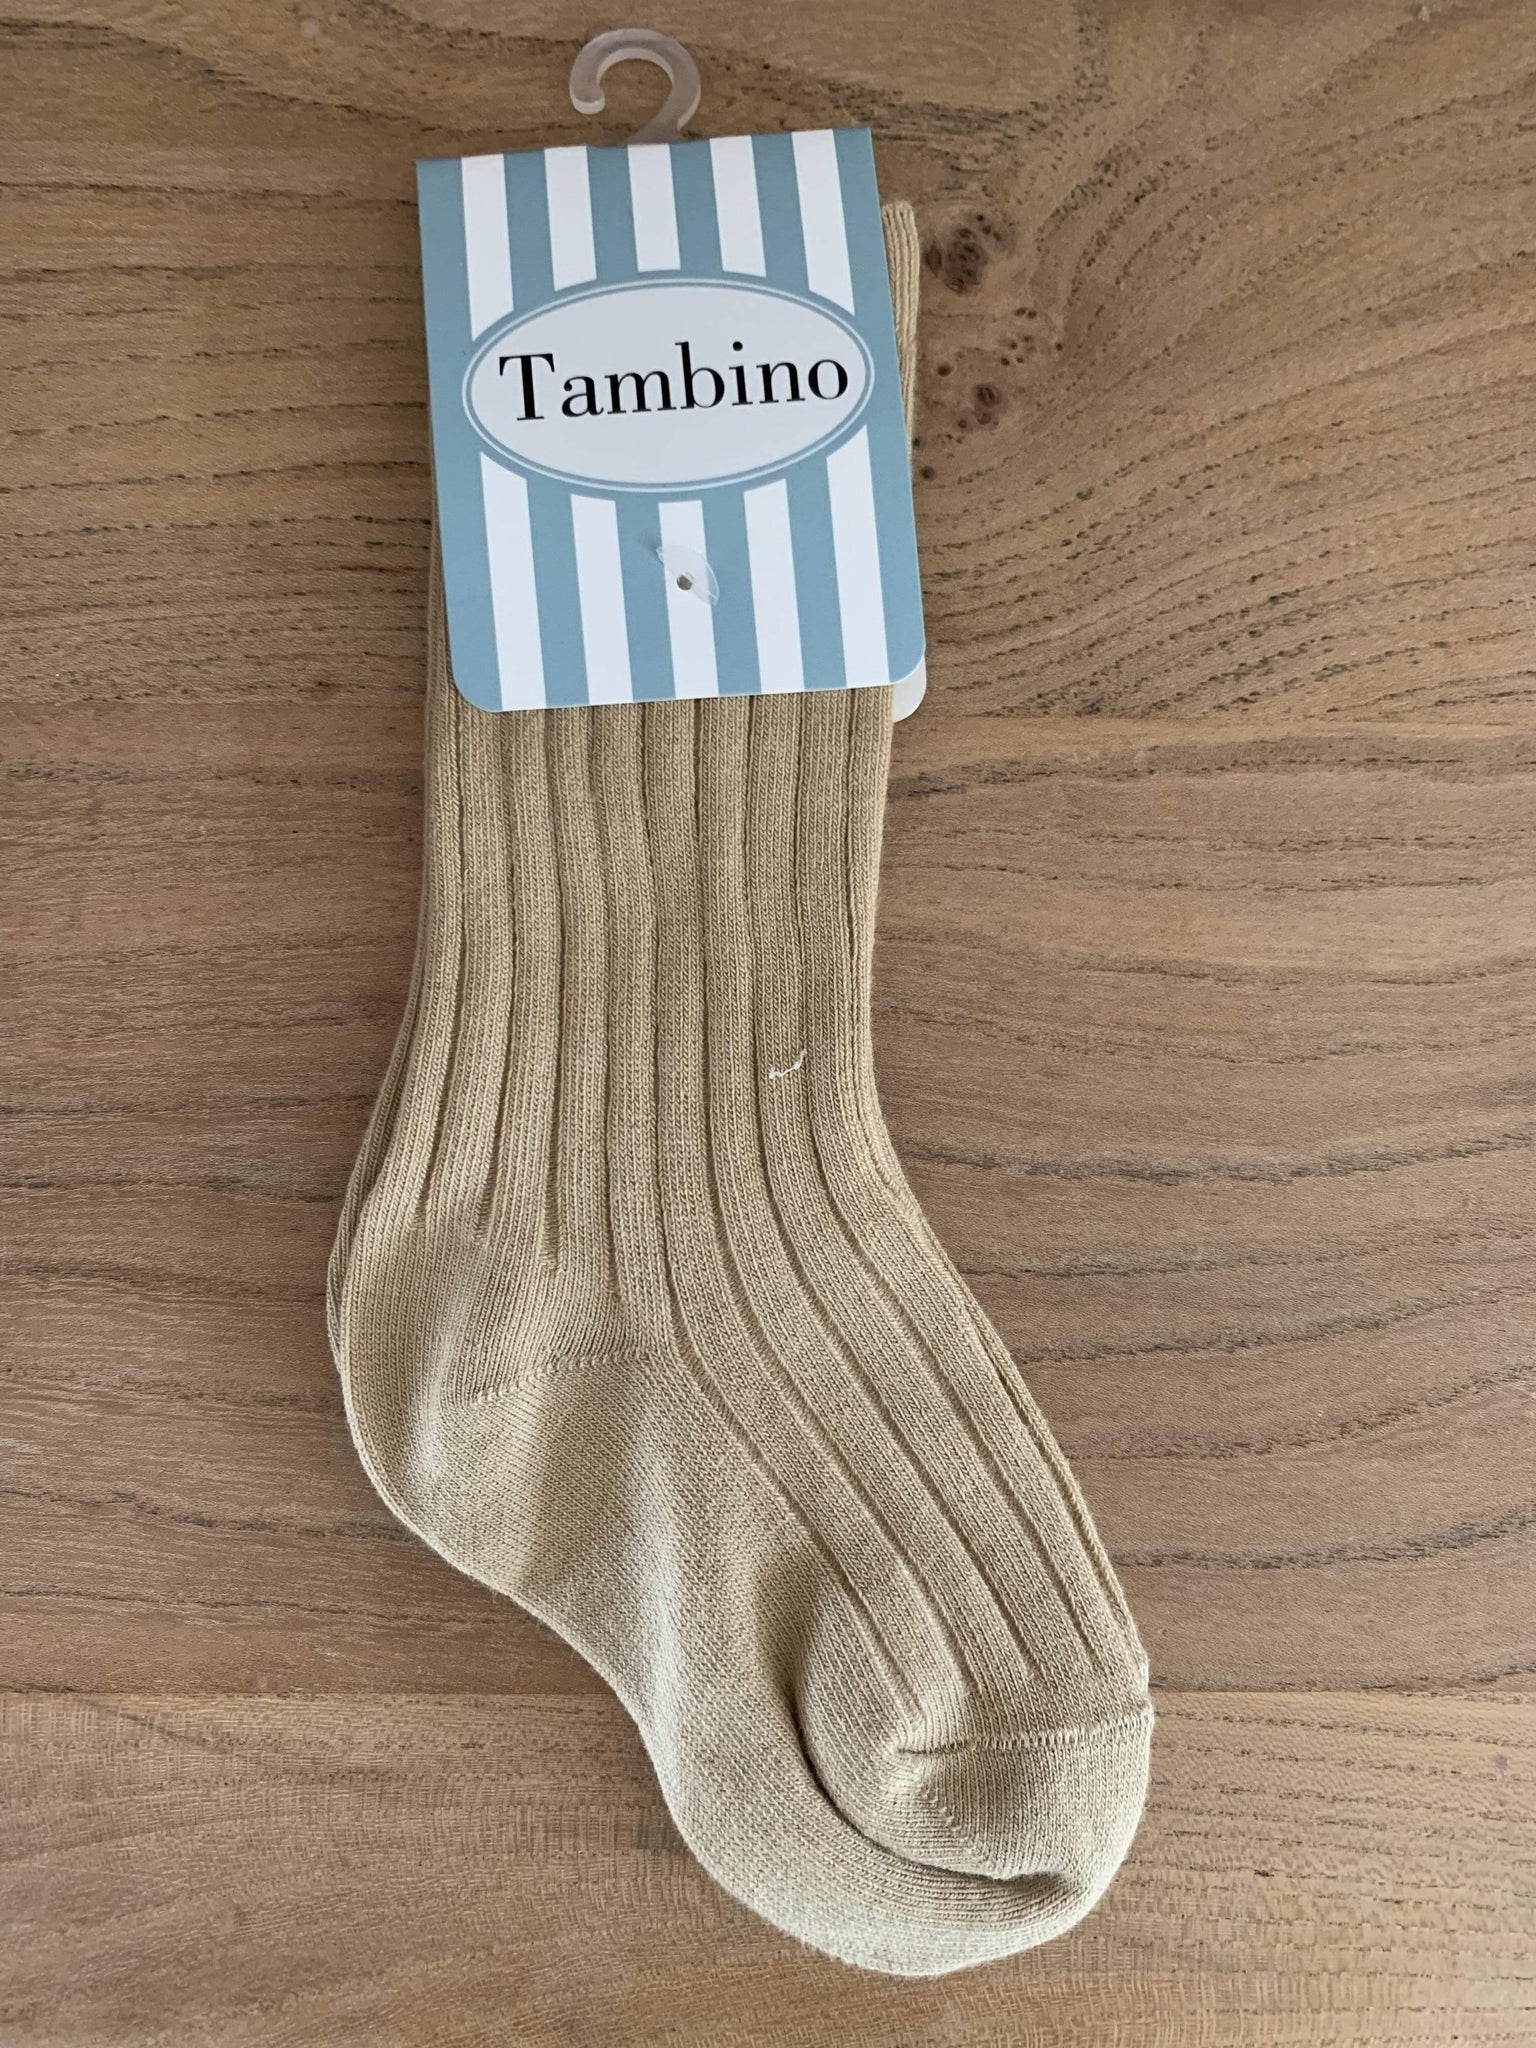 Tambino Socks & Tights 19-22 Socks - Ribbed Camel Boys Knee High Socks